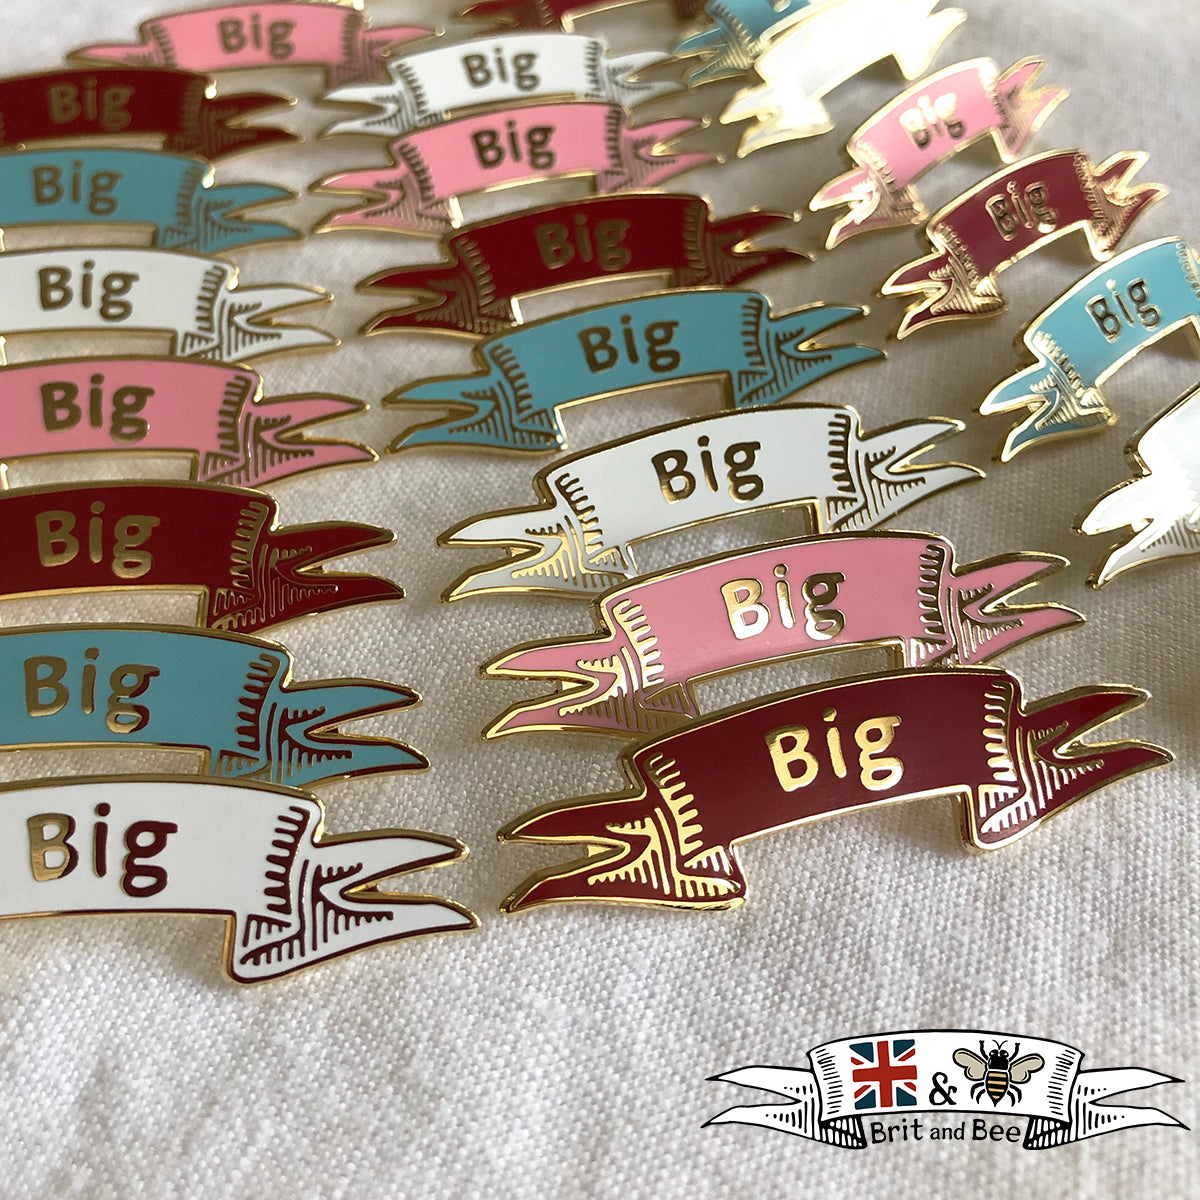 Big Pin | Brit and Bee